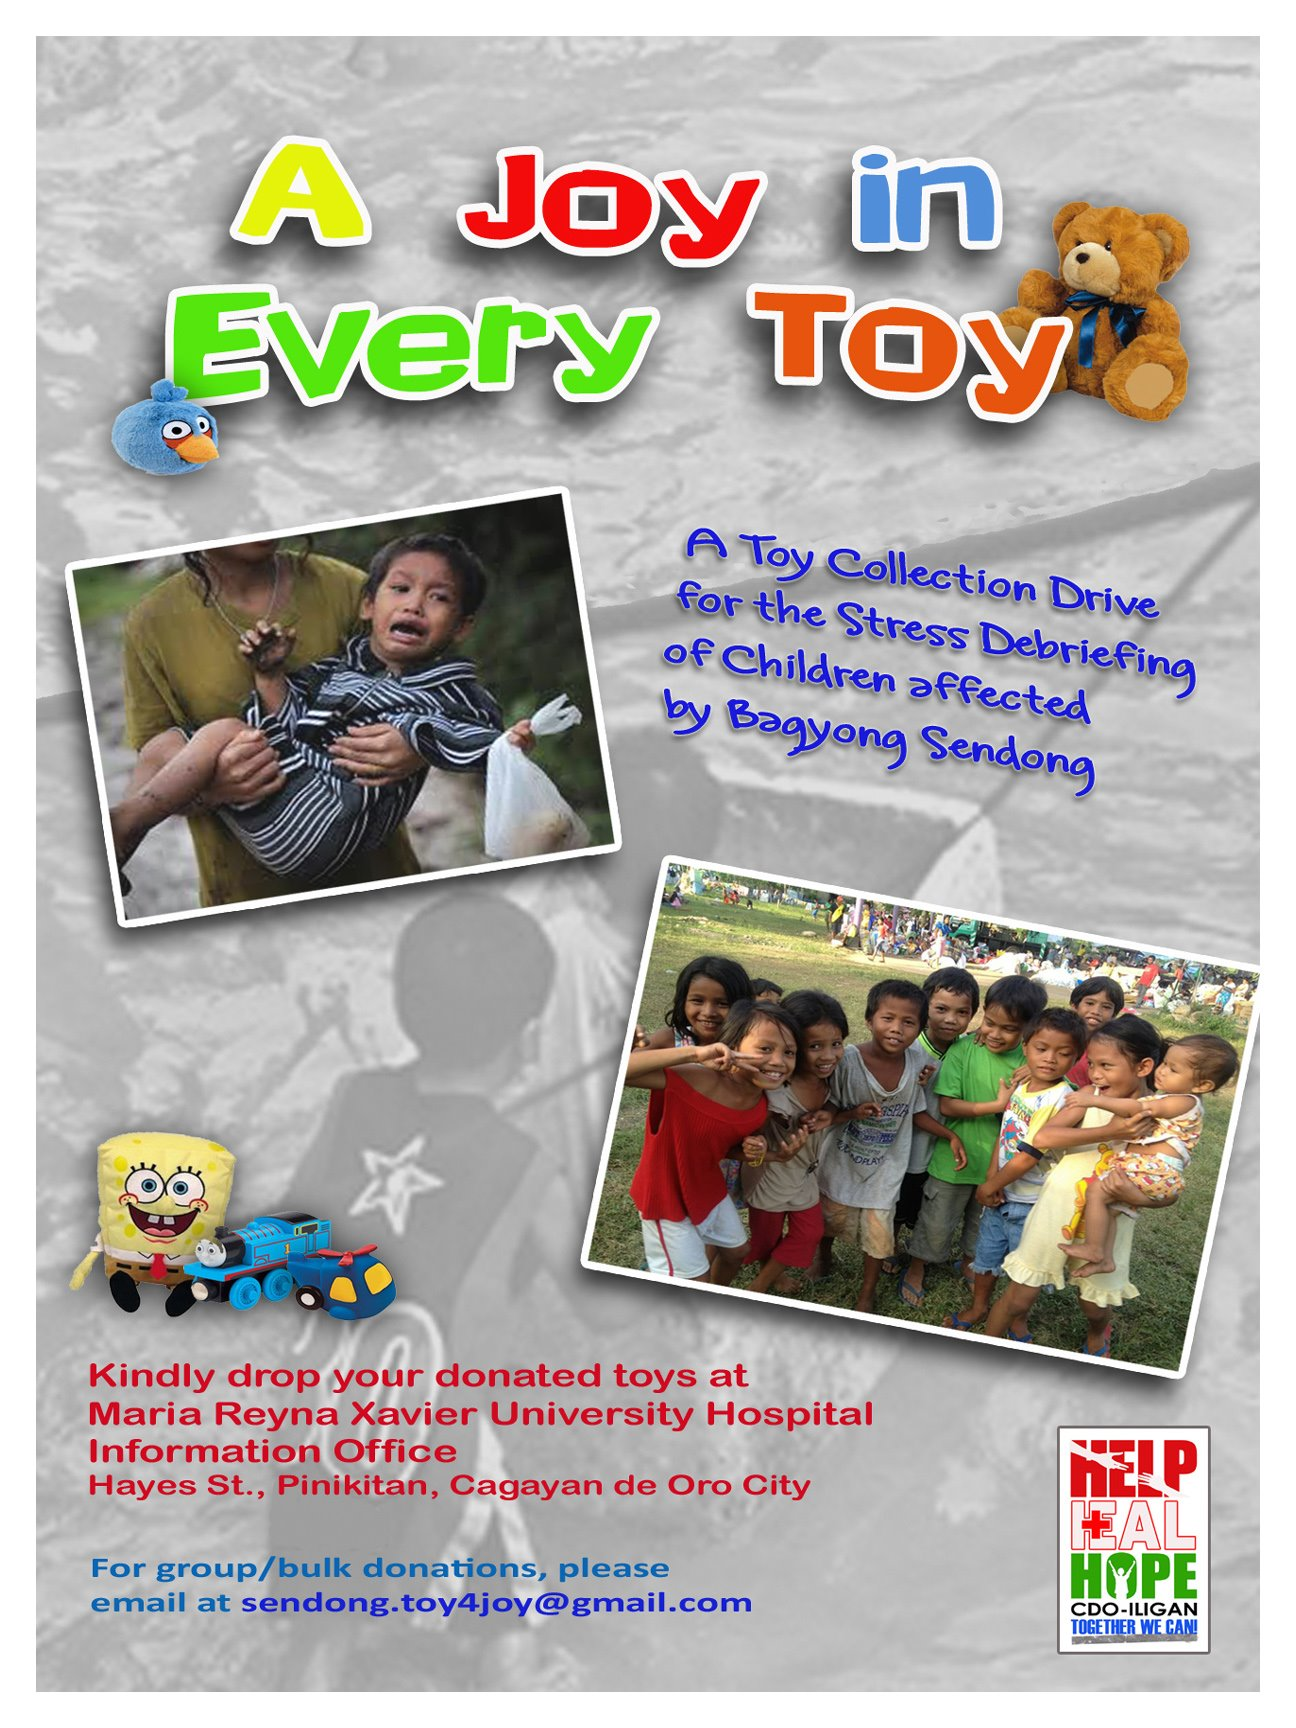 sendong toy for joy